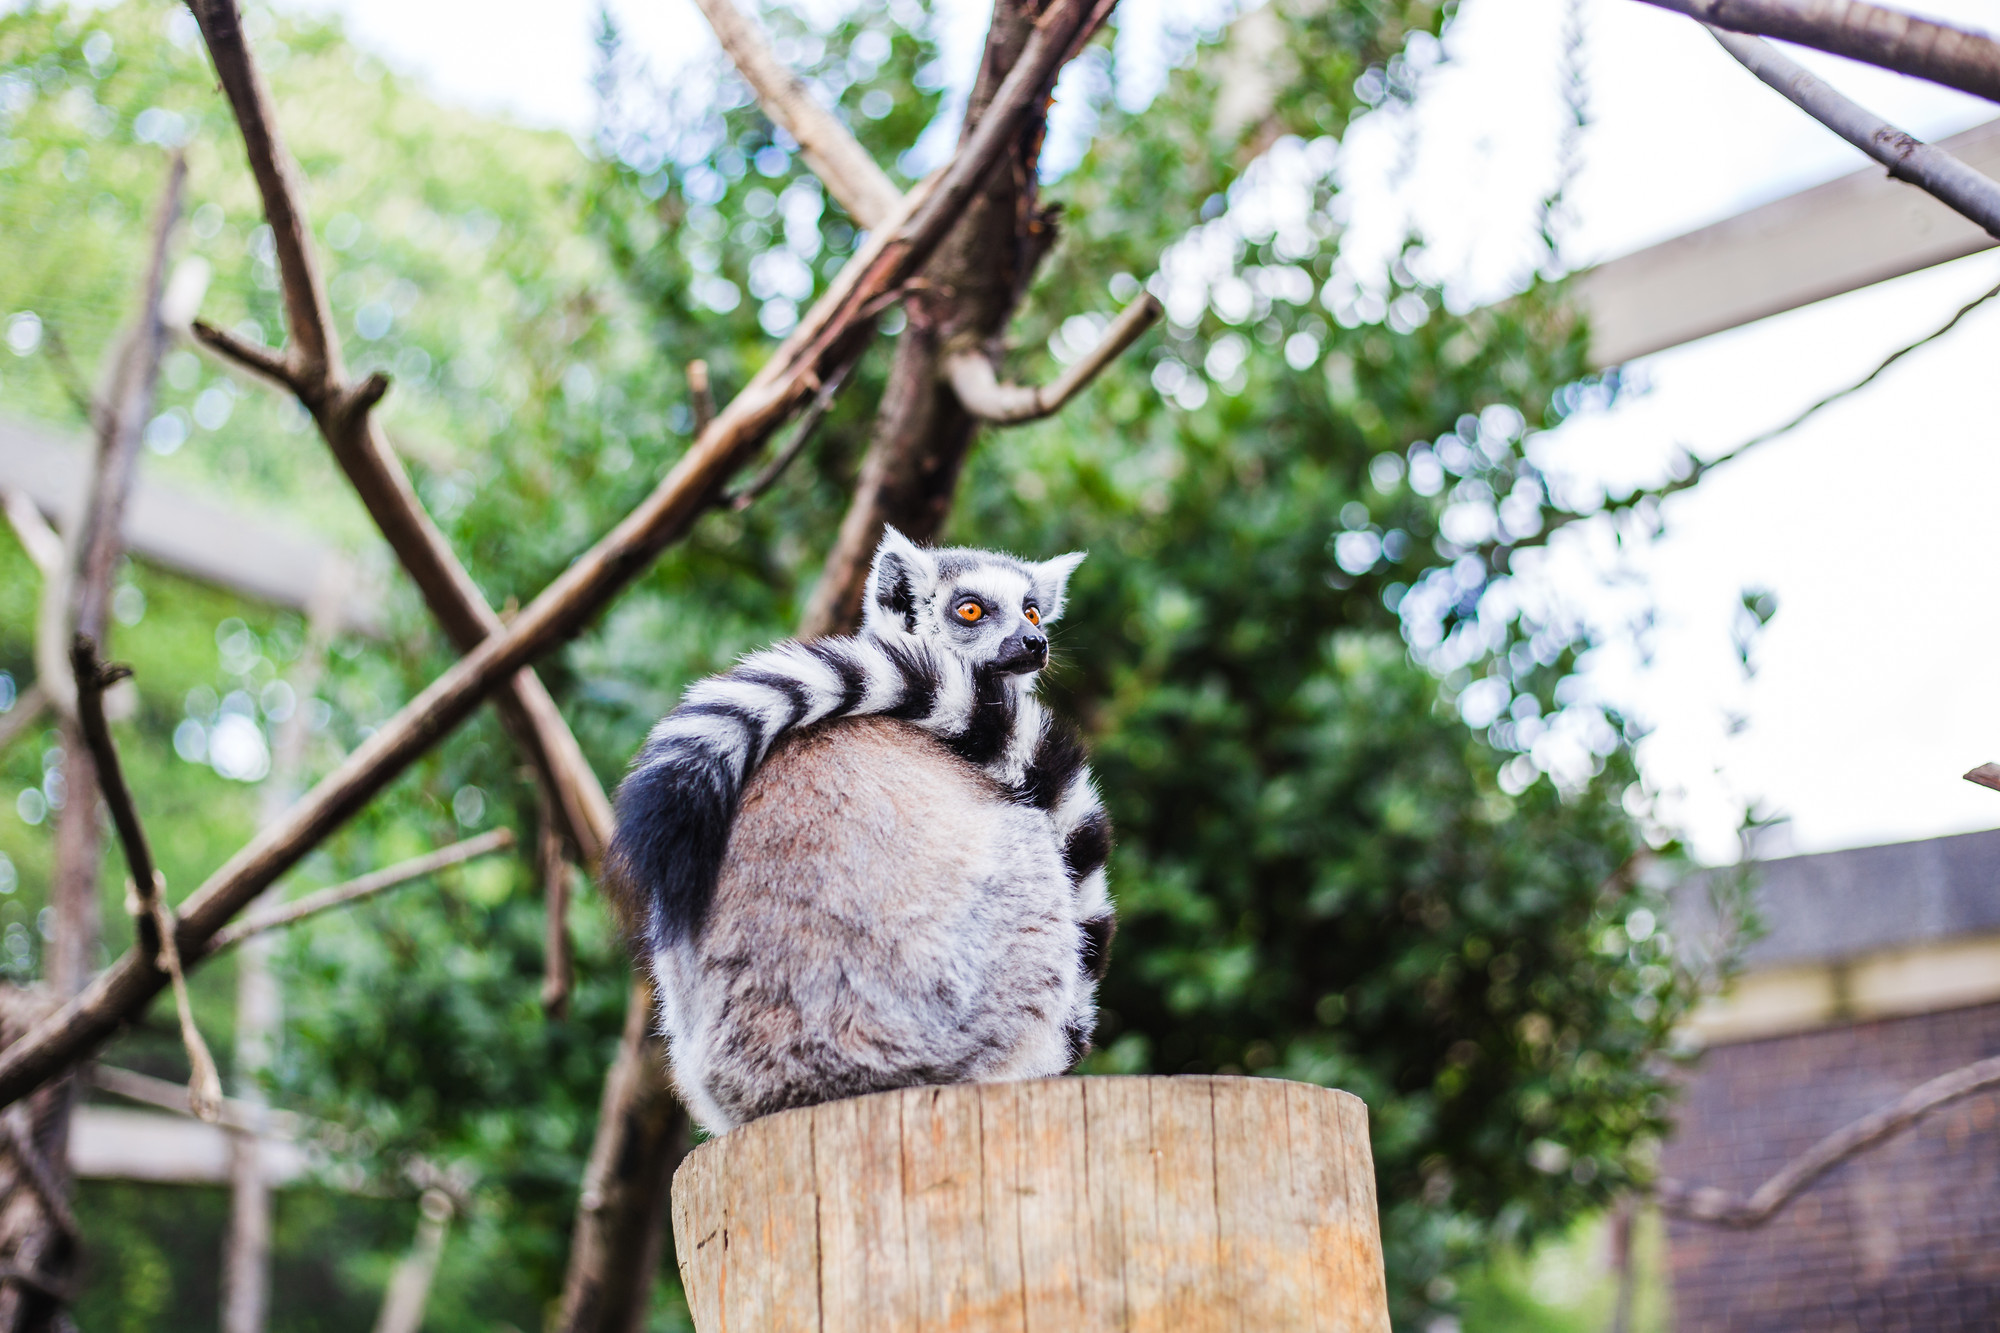 inside-the-lemur-enclosure-london-zoo